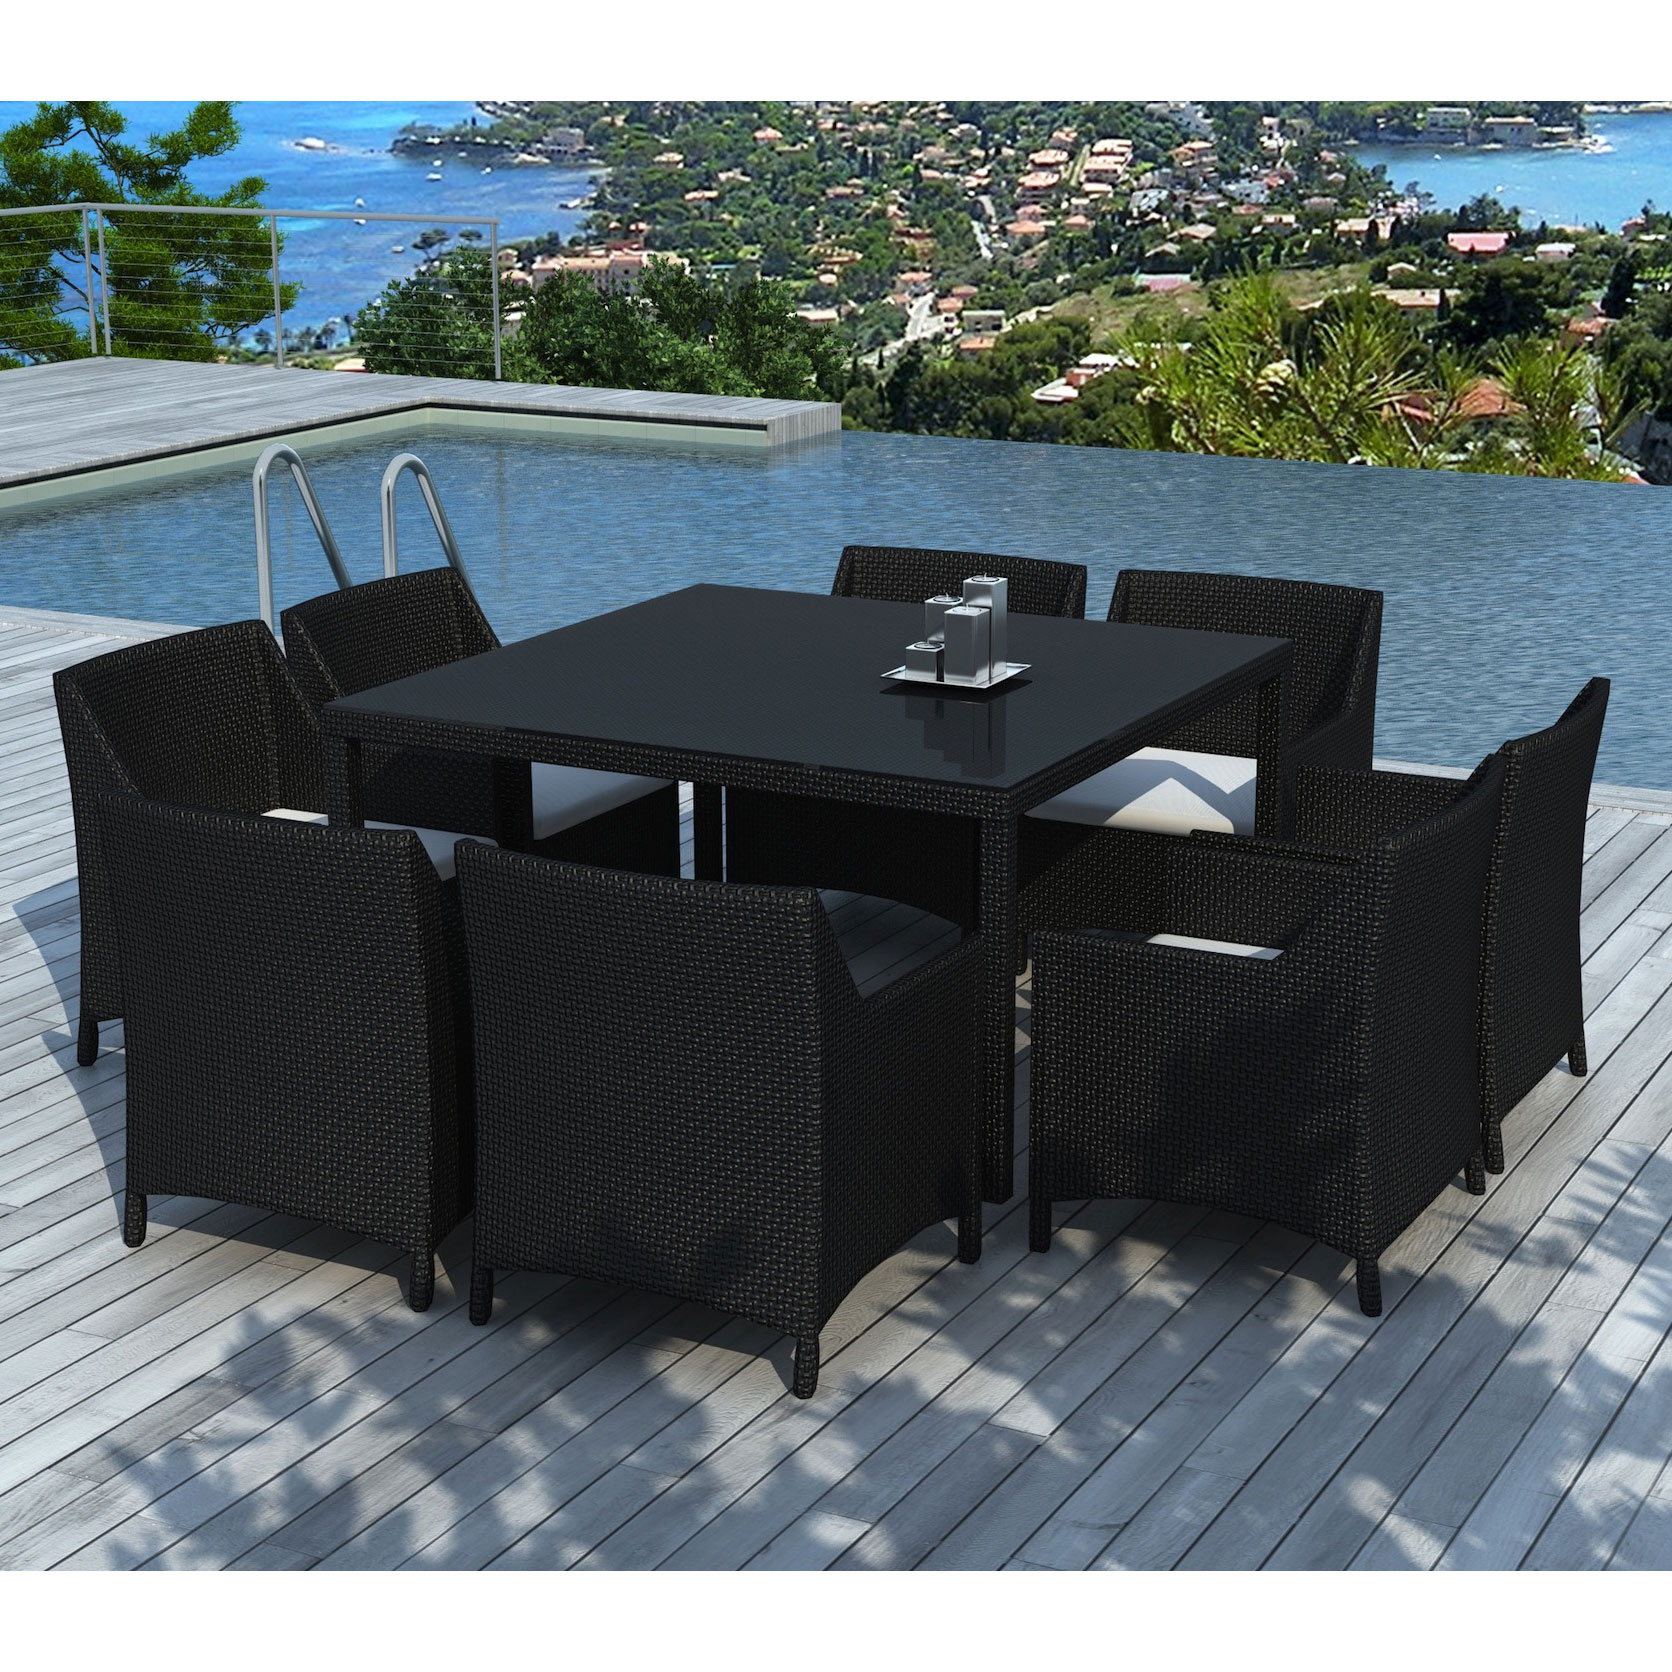 table de jardin en r sine tress e avec 8 fauteuils. Black Bedroom Furniture Sets. Home Design Ideas